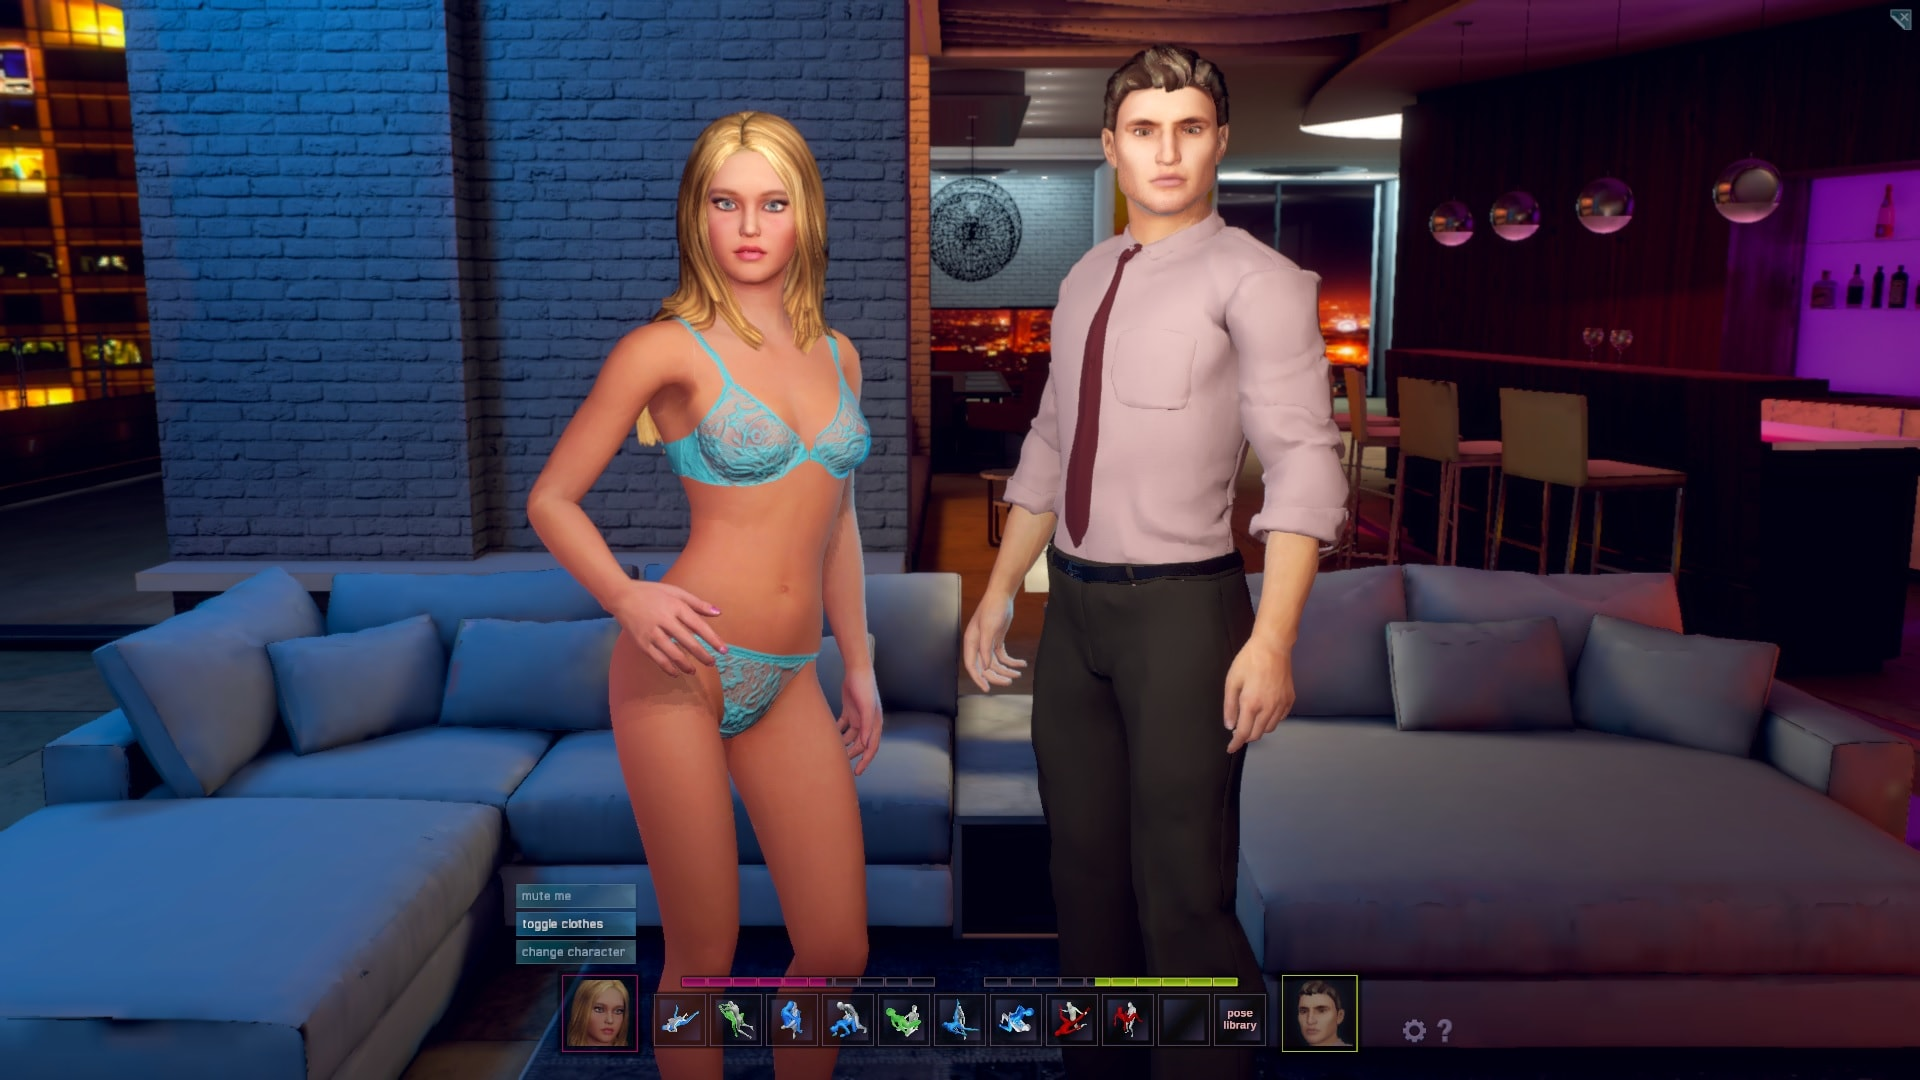 3d sex gameadult sex game